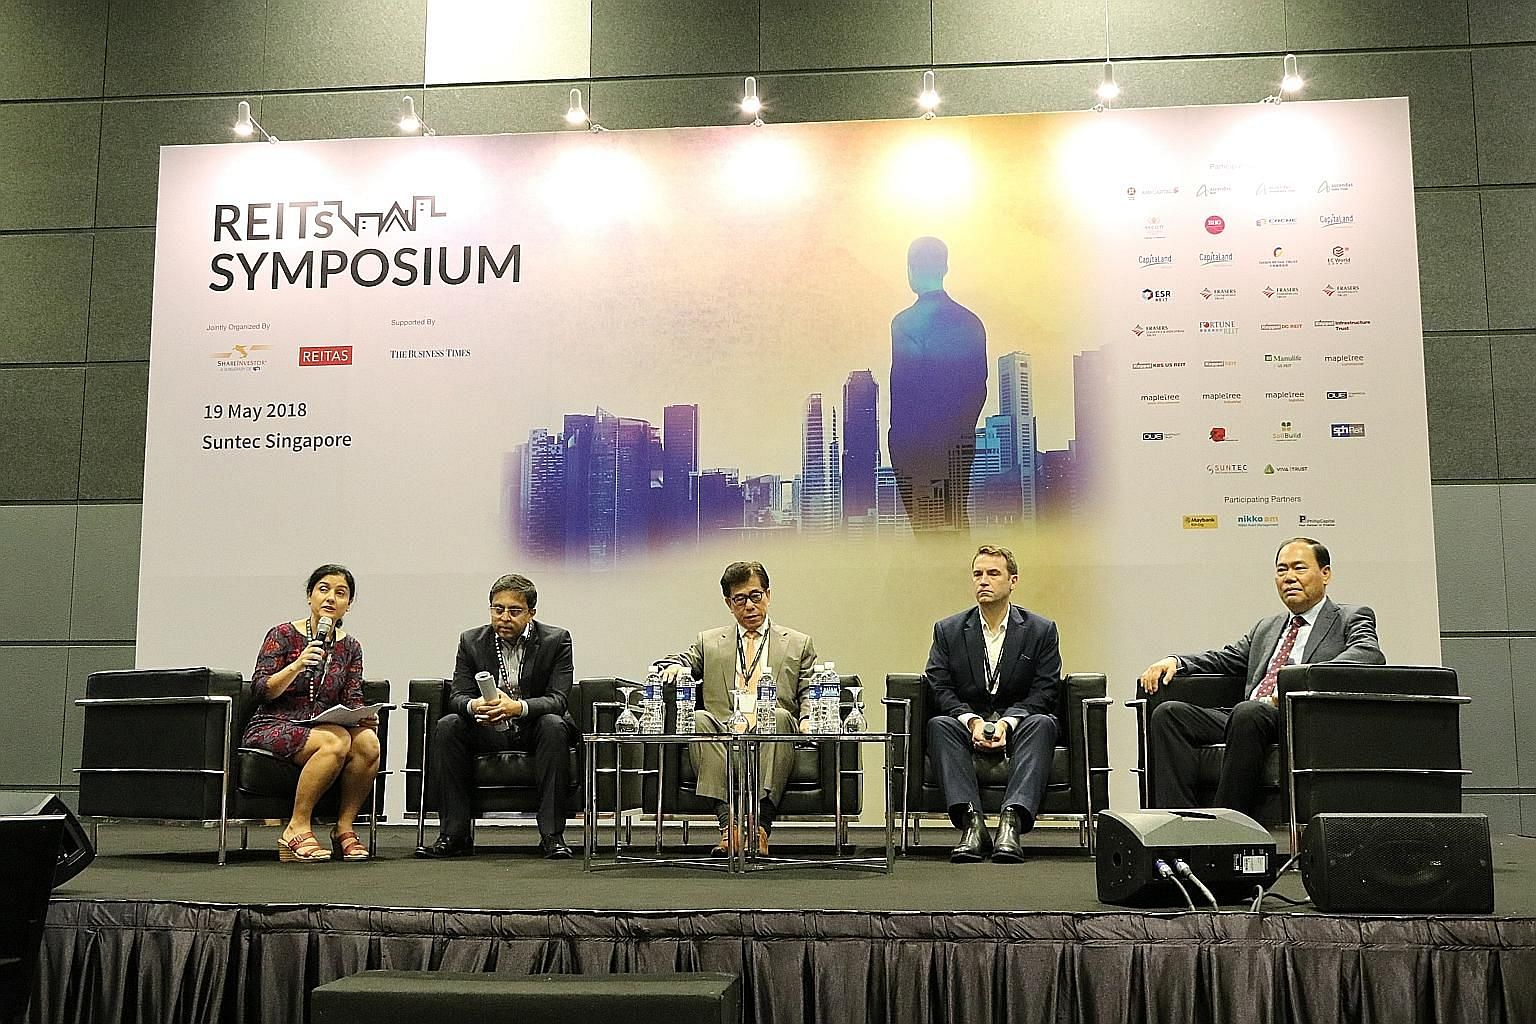 (From left) Ms Nupur Joshi, CEO of the Reit Association of Singapore; Mr Sanjeev Dasgupta, CEO of Ascendas India Trust's trustee-manager; Mr Anthony Ang, CEO of Sasseur Reit's manager; Mr Geoff Howie, Singapore Exchange market strategist, and Mr Goh